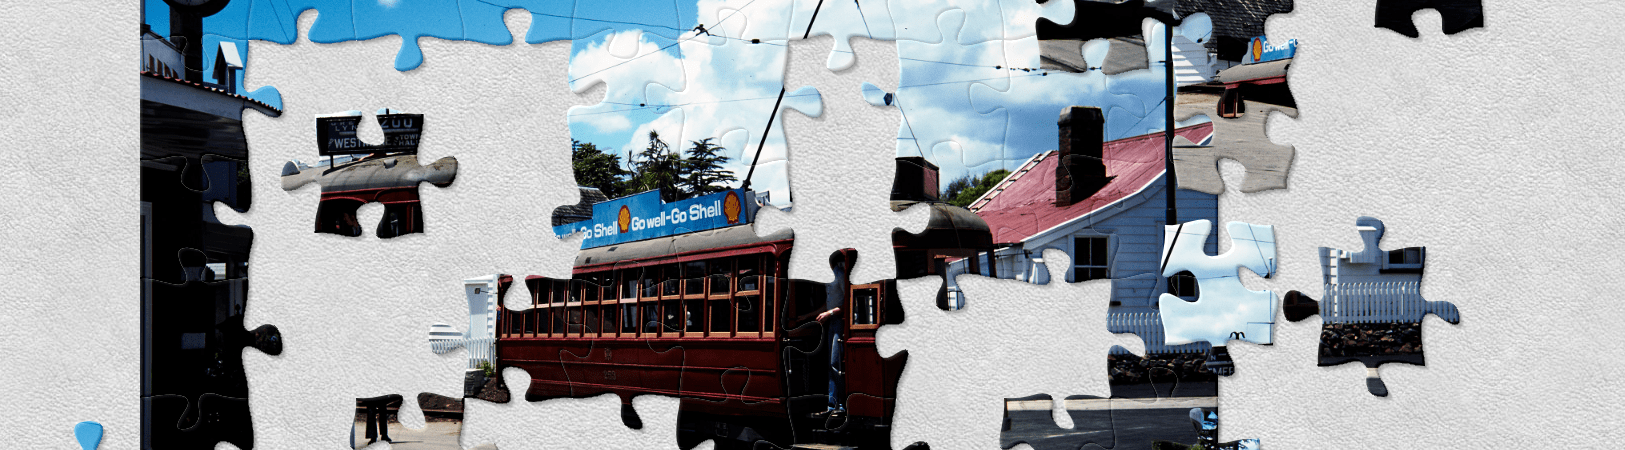 jigsaw puzzle on tram